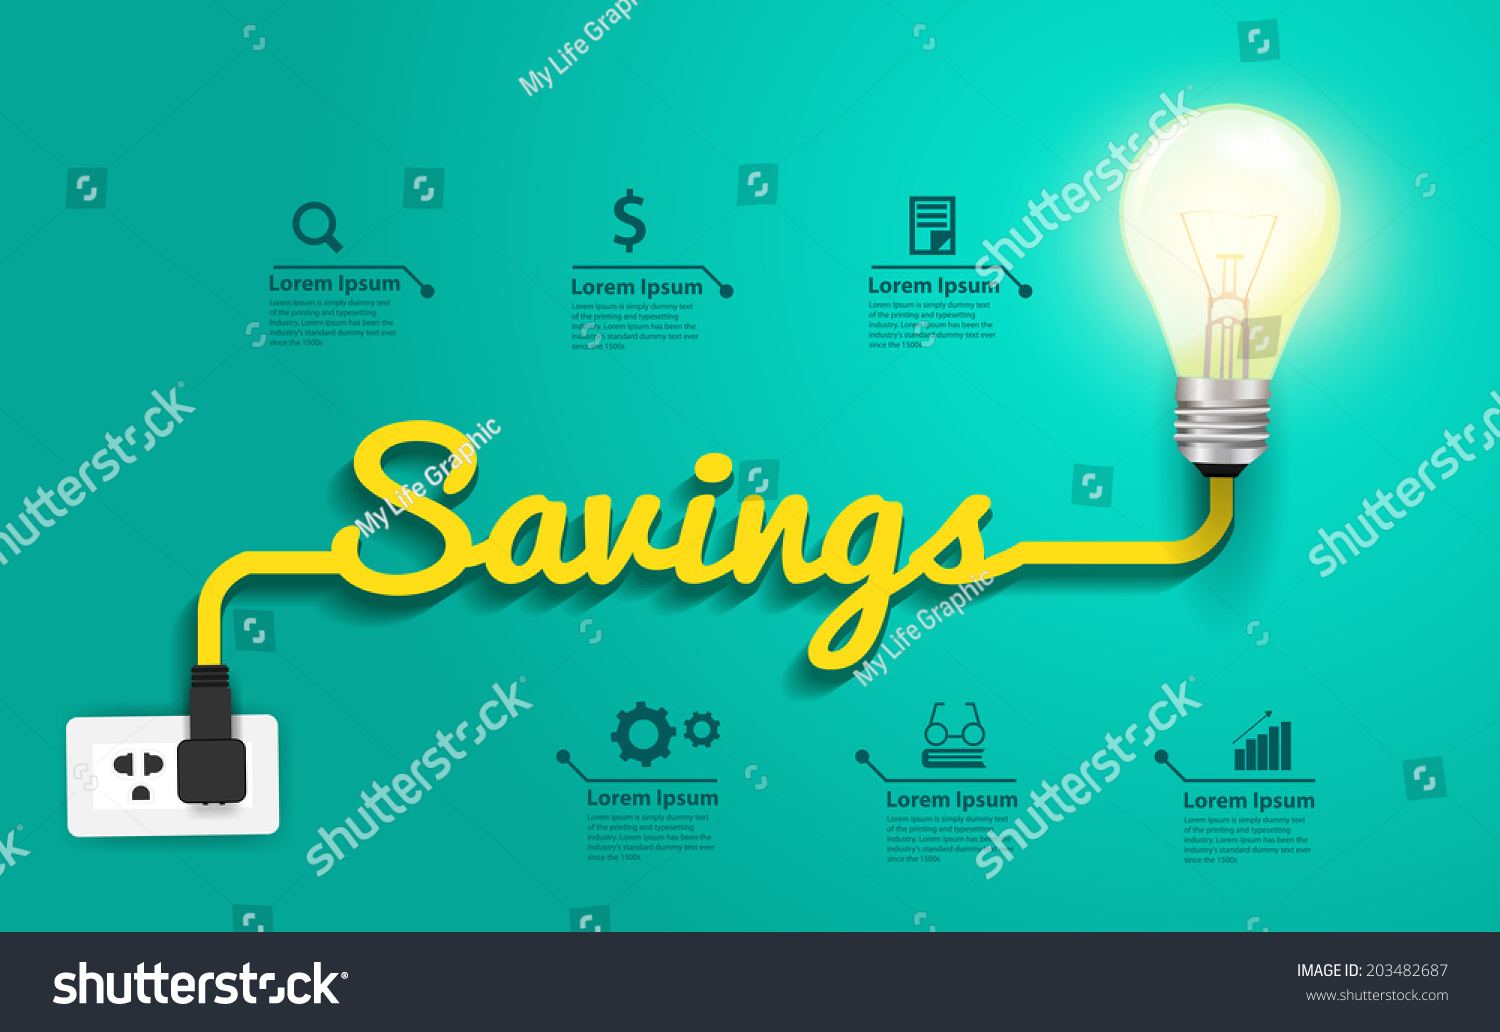 Savings Concept Creative Light Bulb Idea Stock Vector Royalty Free Infographic With Template For Diagram Abstract Layout Step Up Options